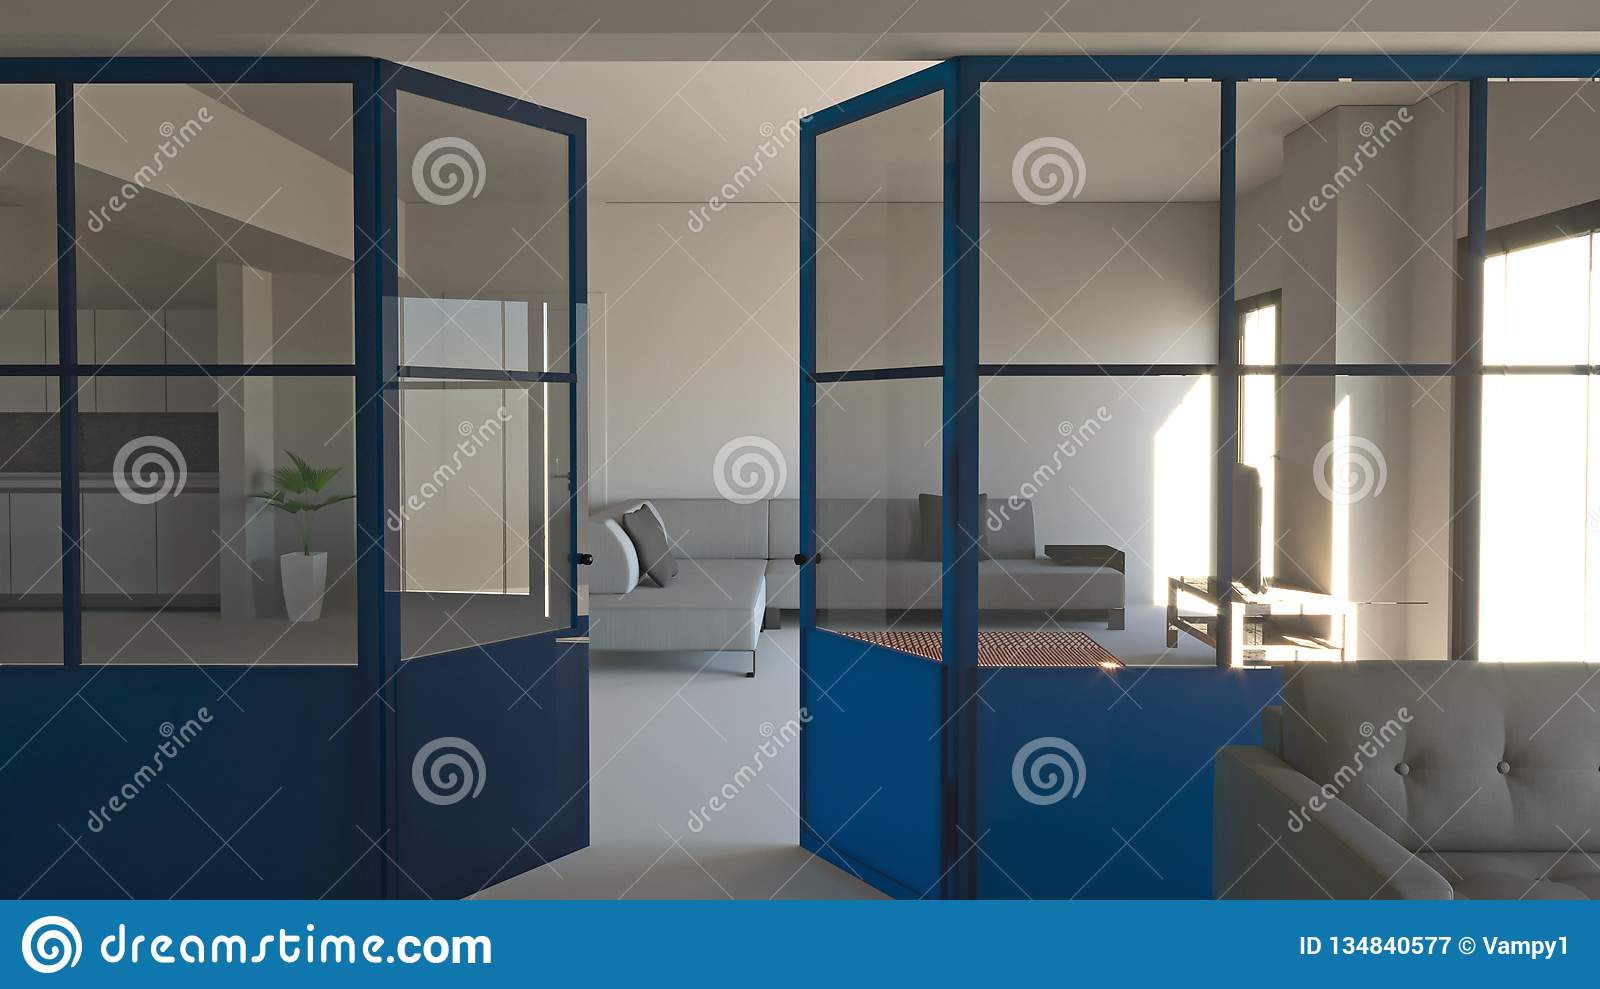 Glass Wall In Blue Iron And Glass Living Room Living Space And Kitchen Modern Interior Design Stock Image Image Of Cement Interior 134840577